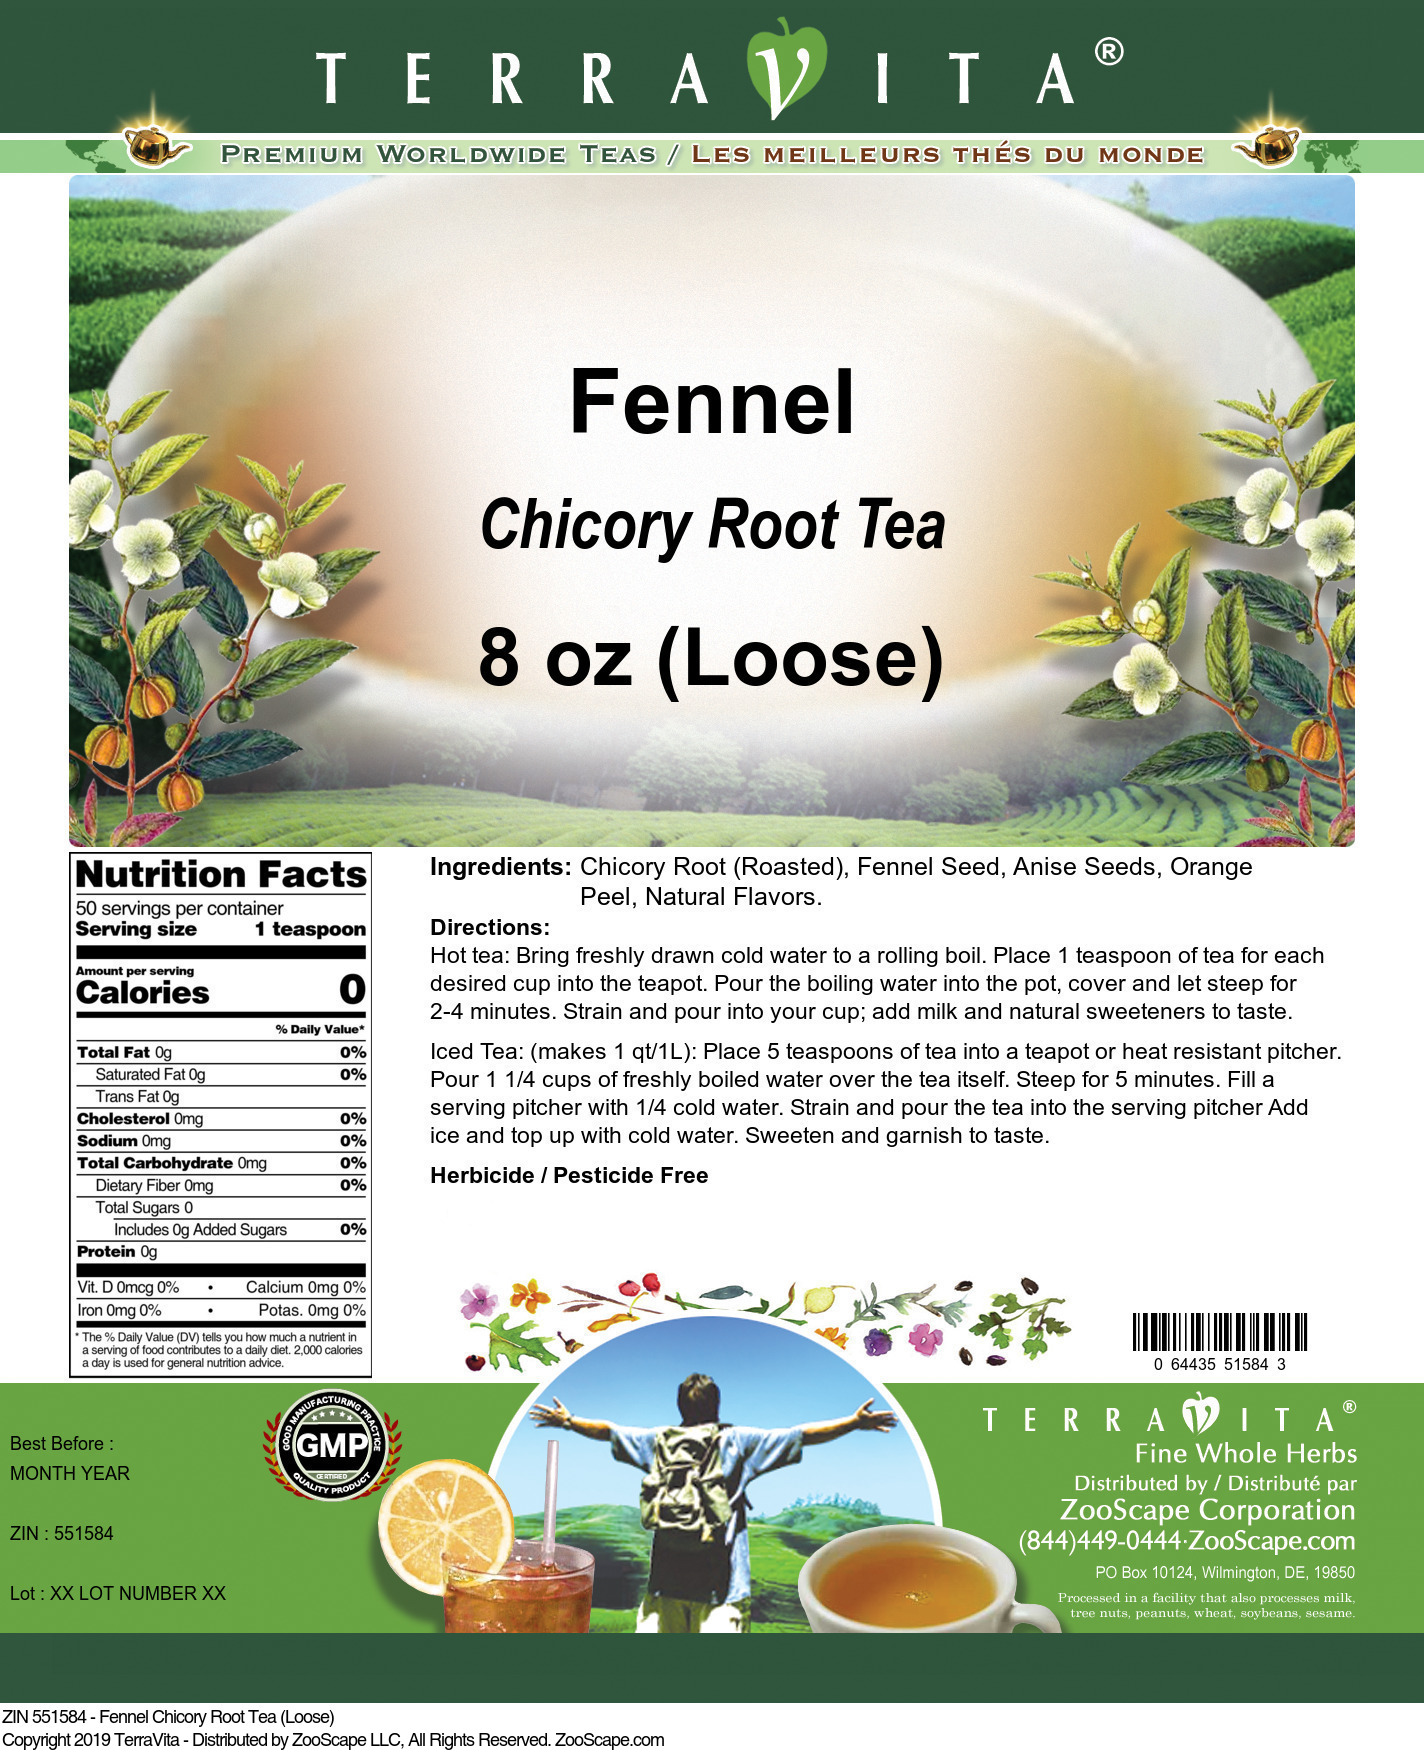 Fennel Chicory Root Tea (Loose)